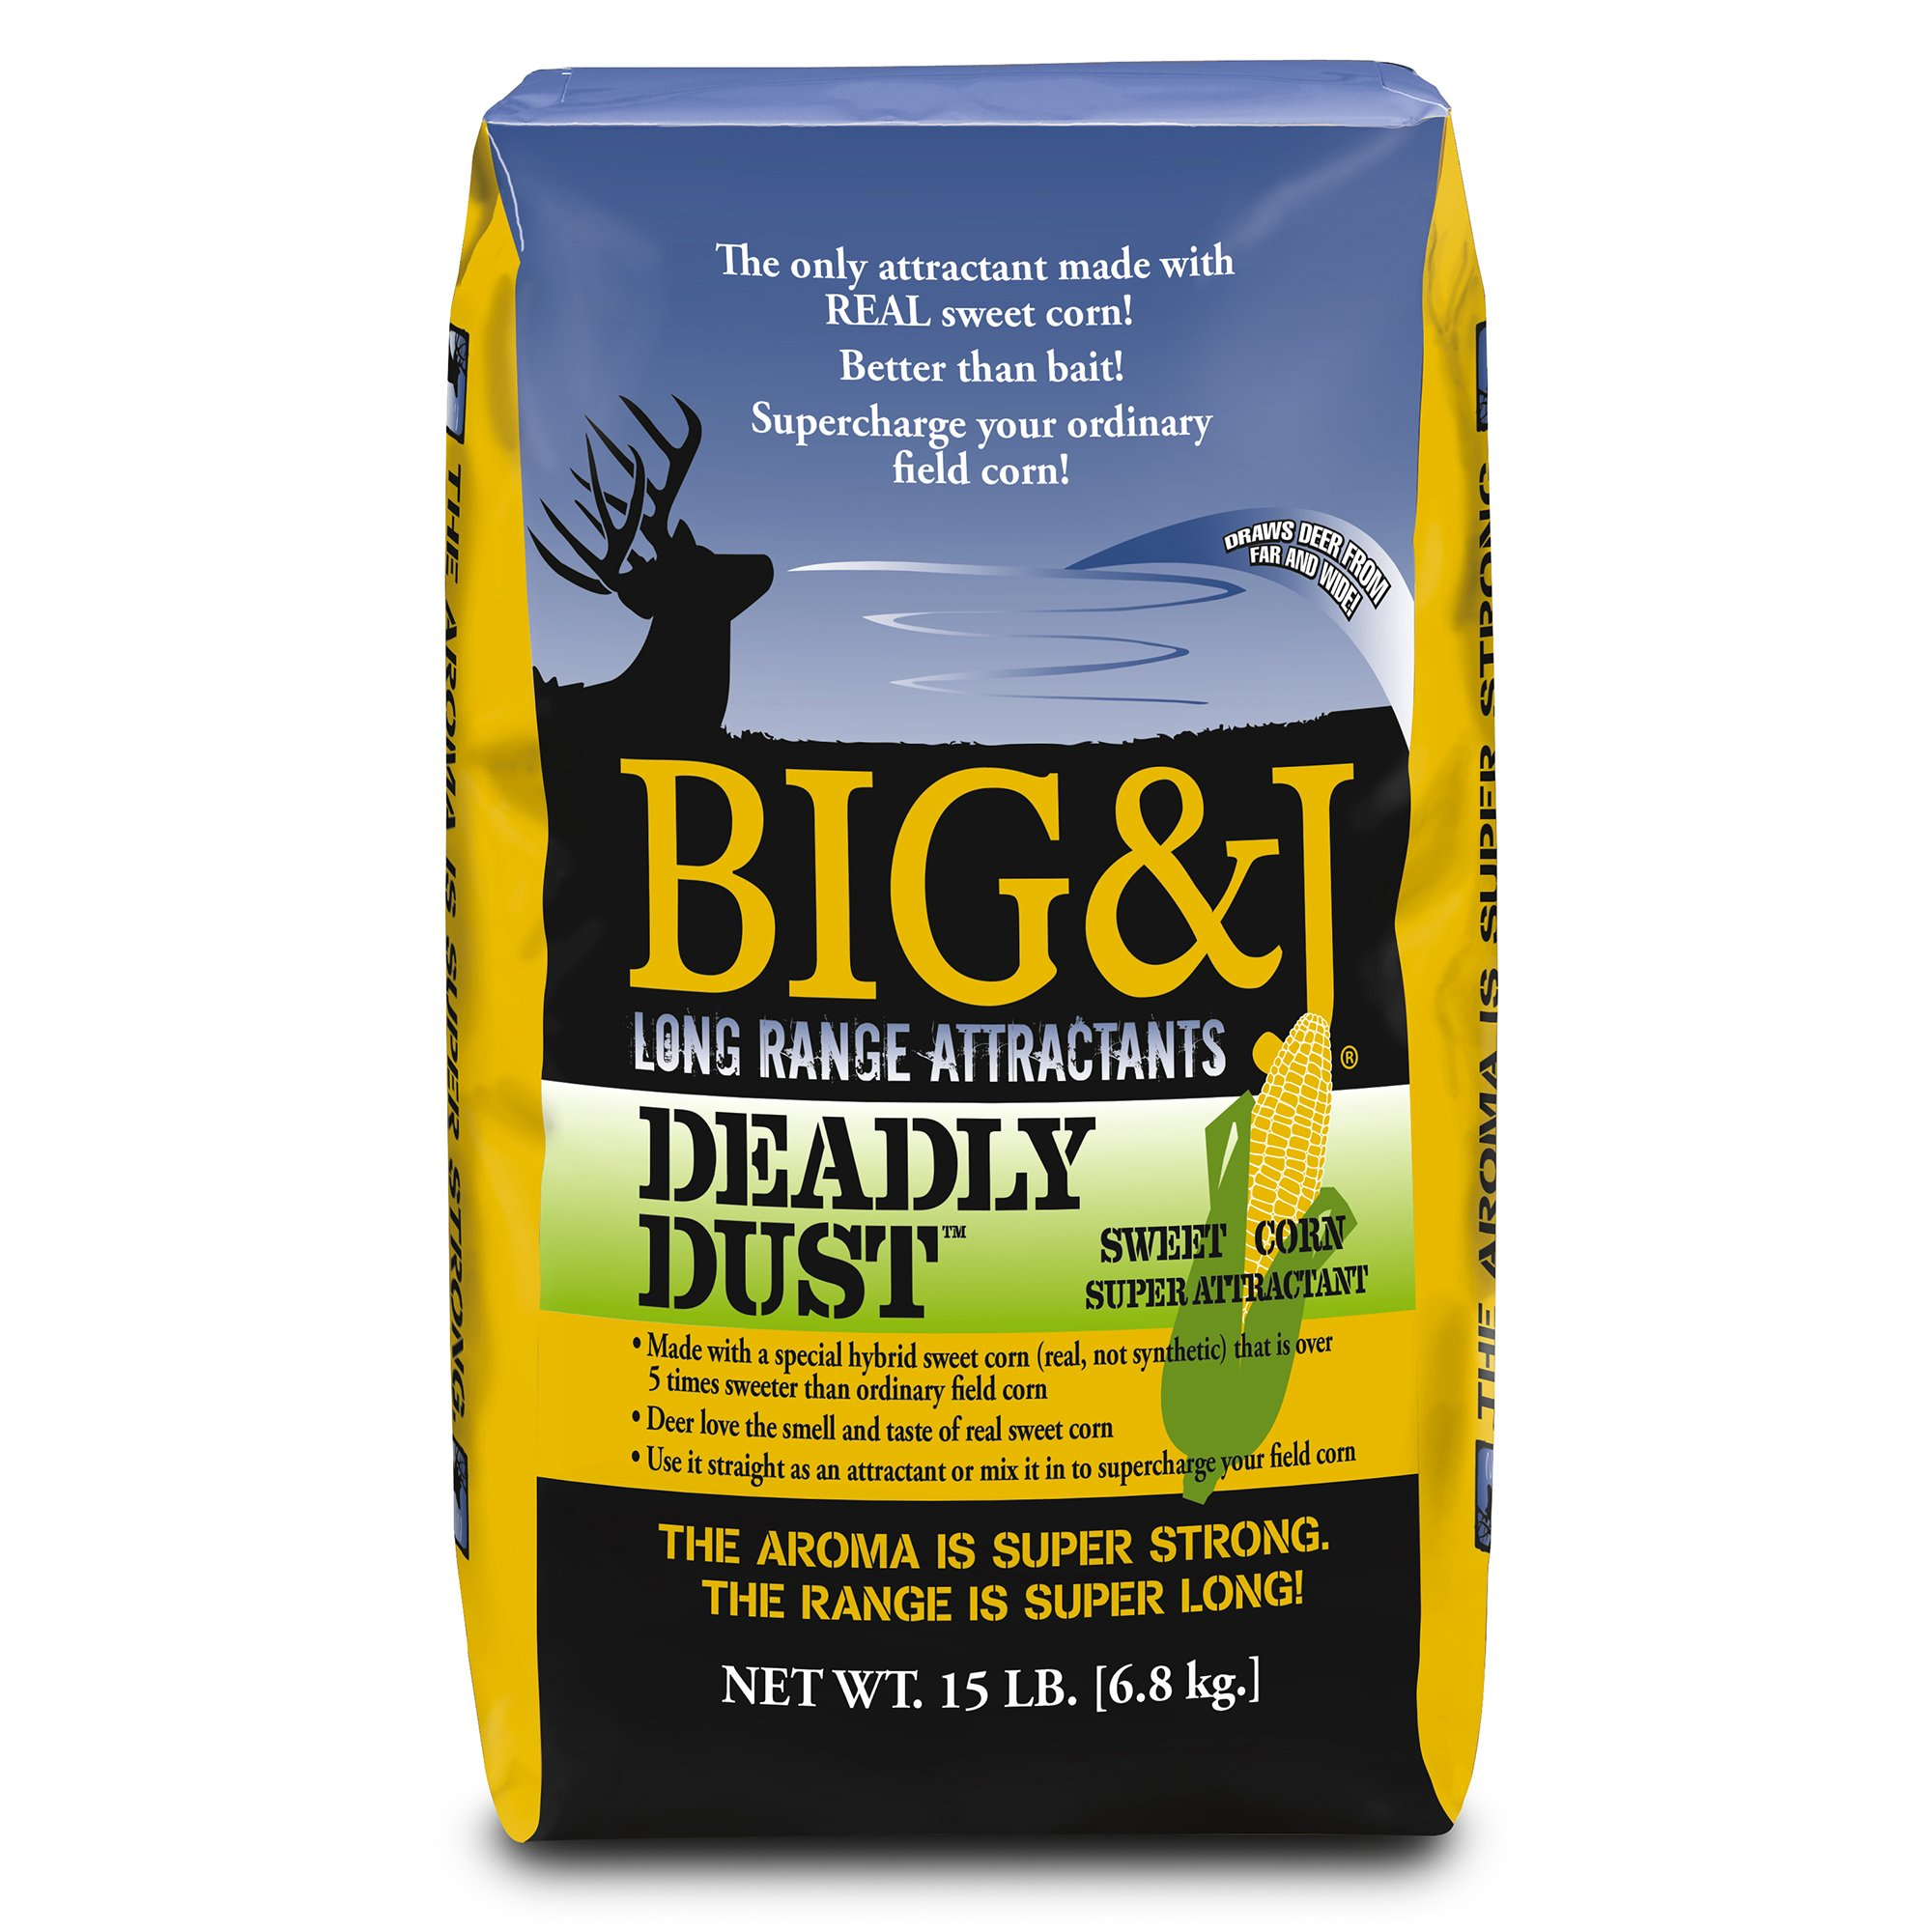 Big & J Deadly Dust Deer Attractant, 15 lbs.